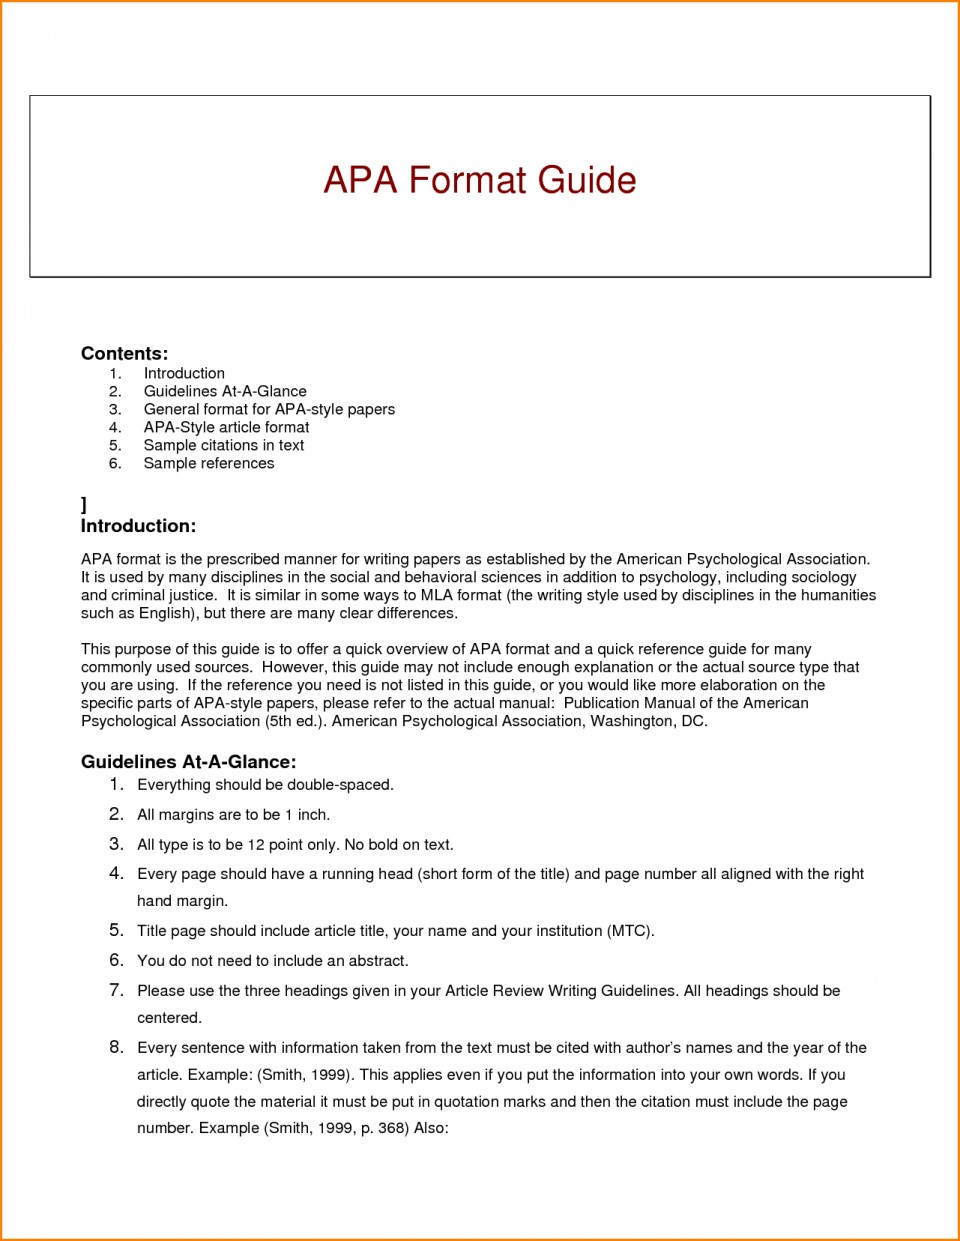 018 How Do I Cite Research Paper In Apa Format Staggering A To Sources 960